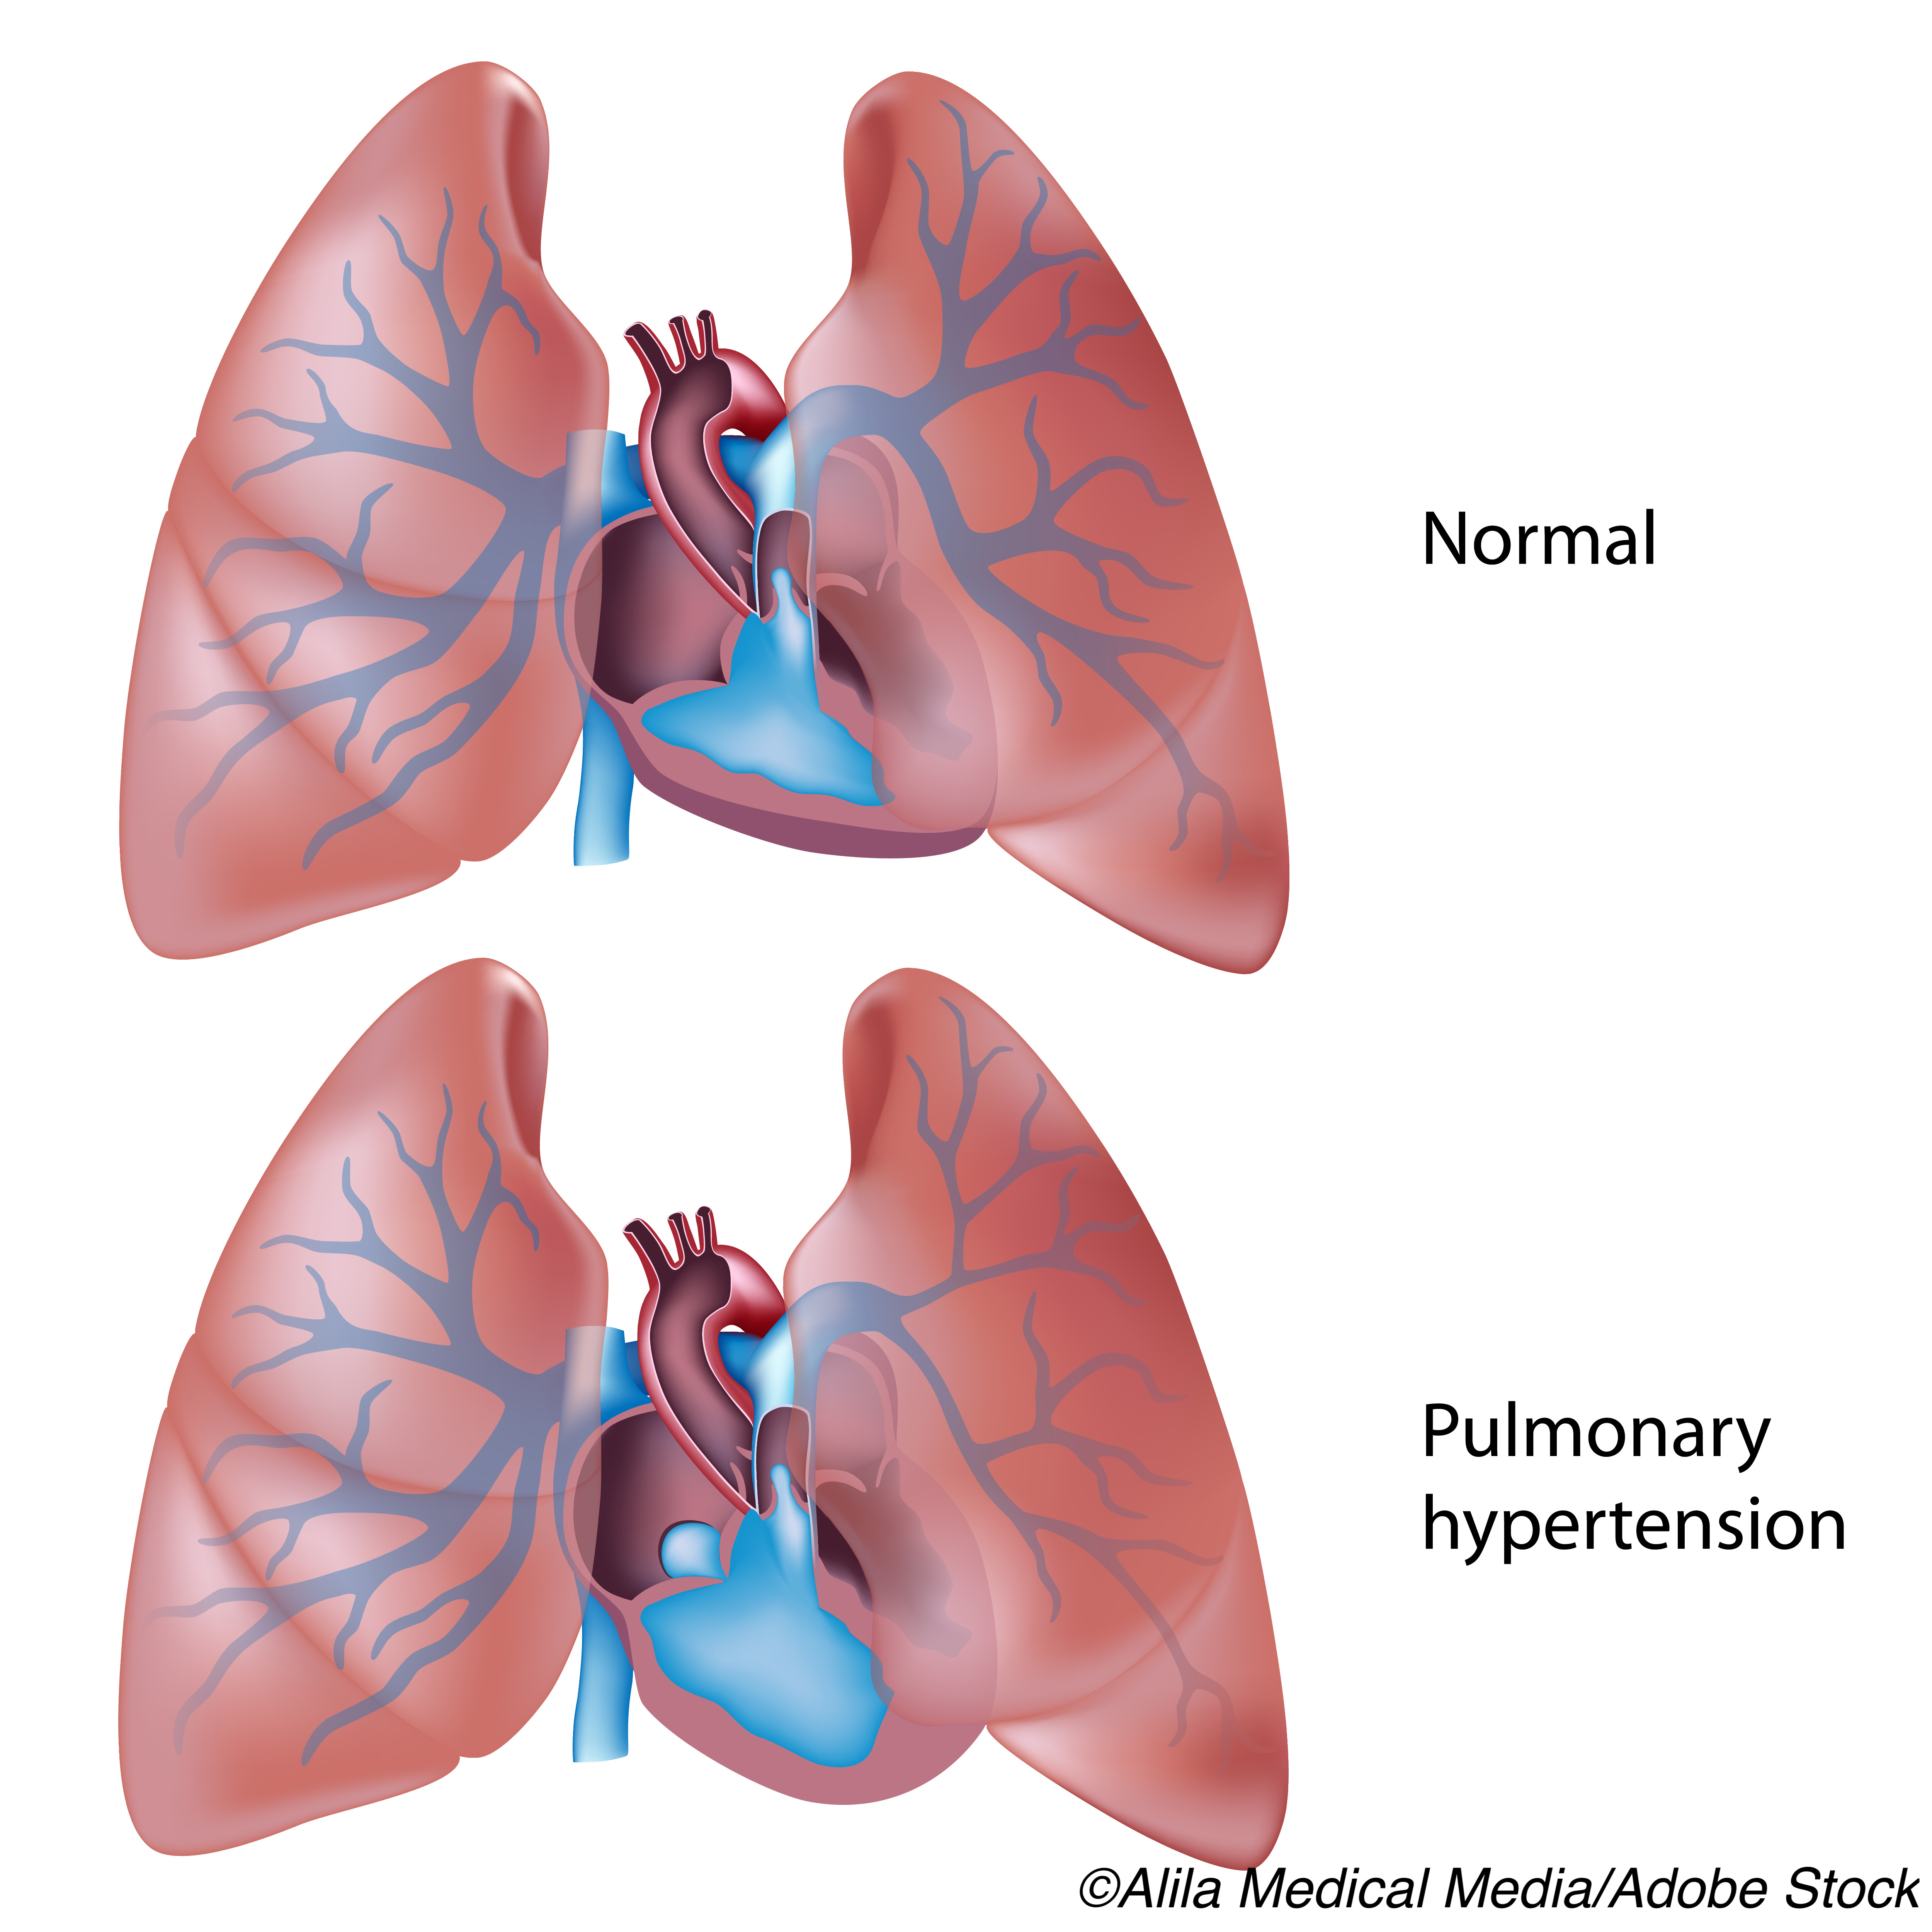 Novel Inhaled Treprostinil May Benefit Persons with Pulmonary Hypertension